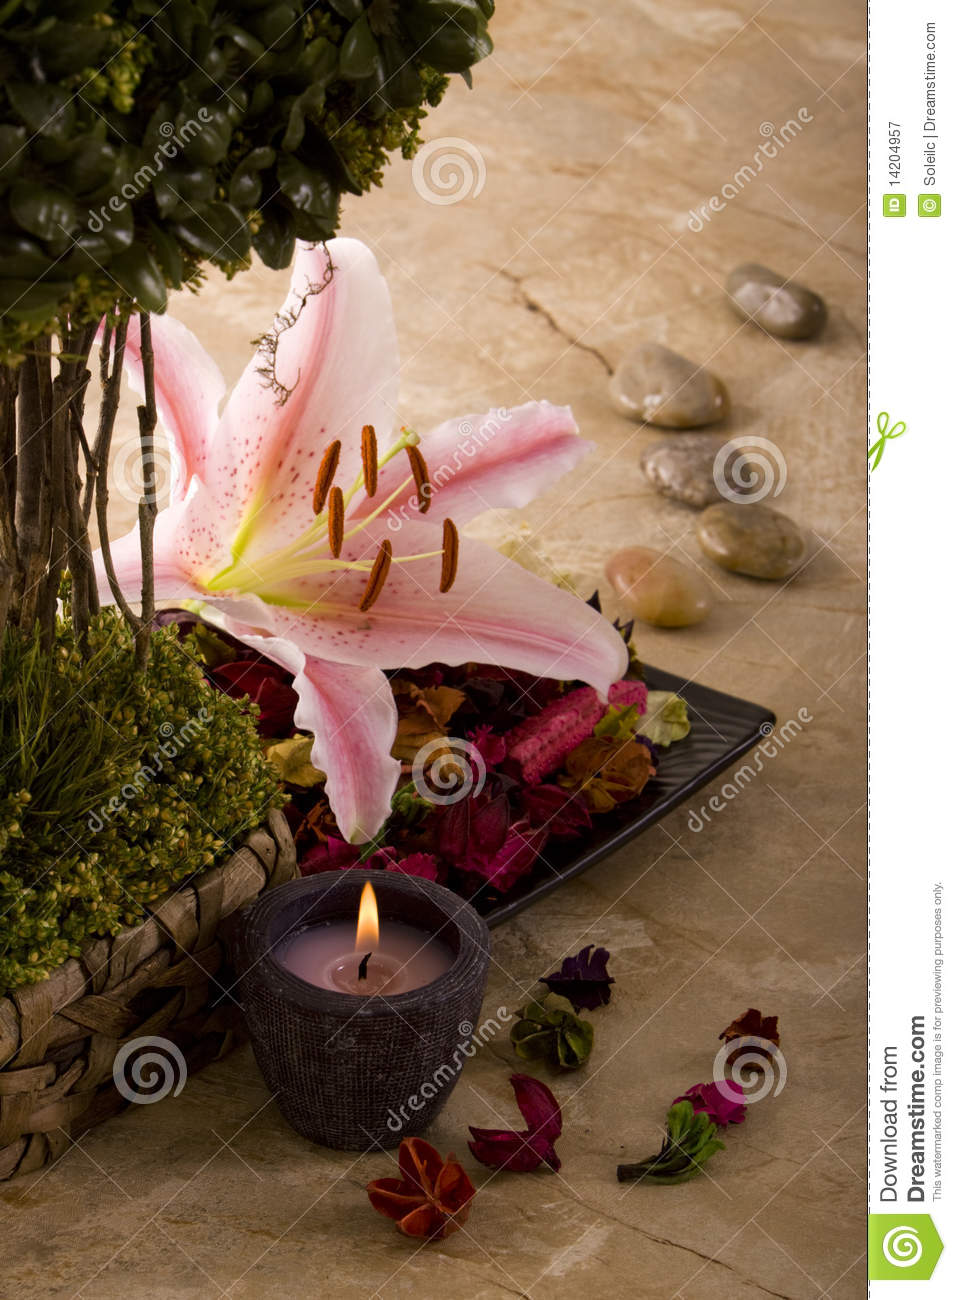 spa decor - Spa Decor